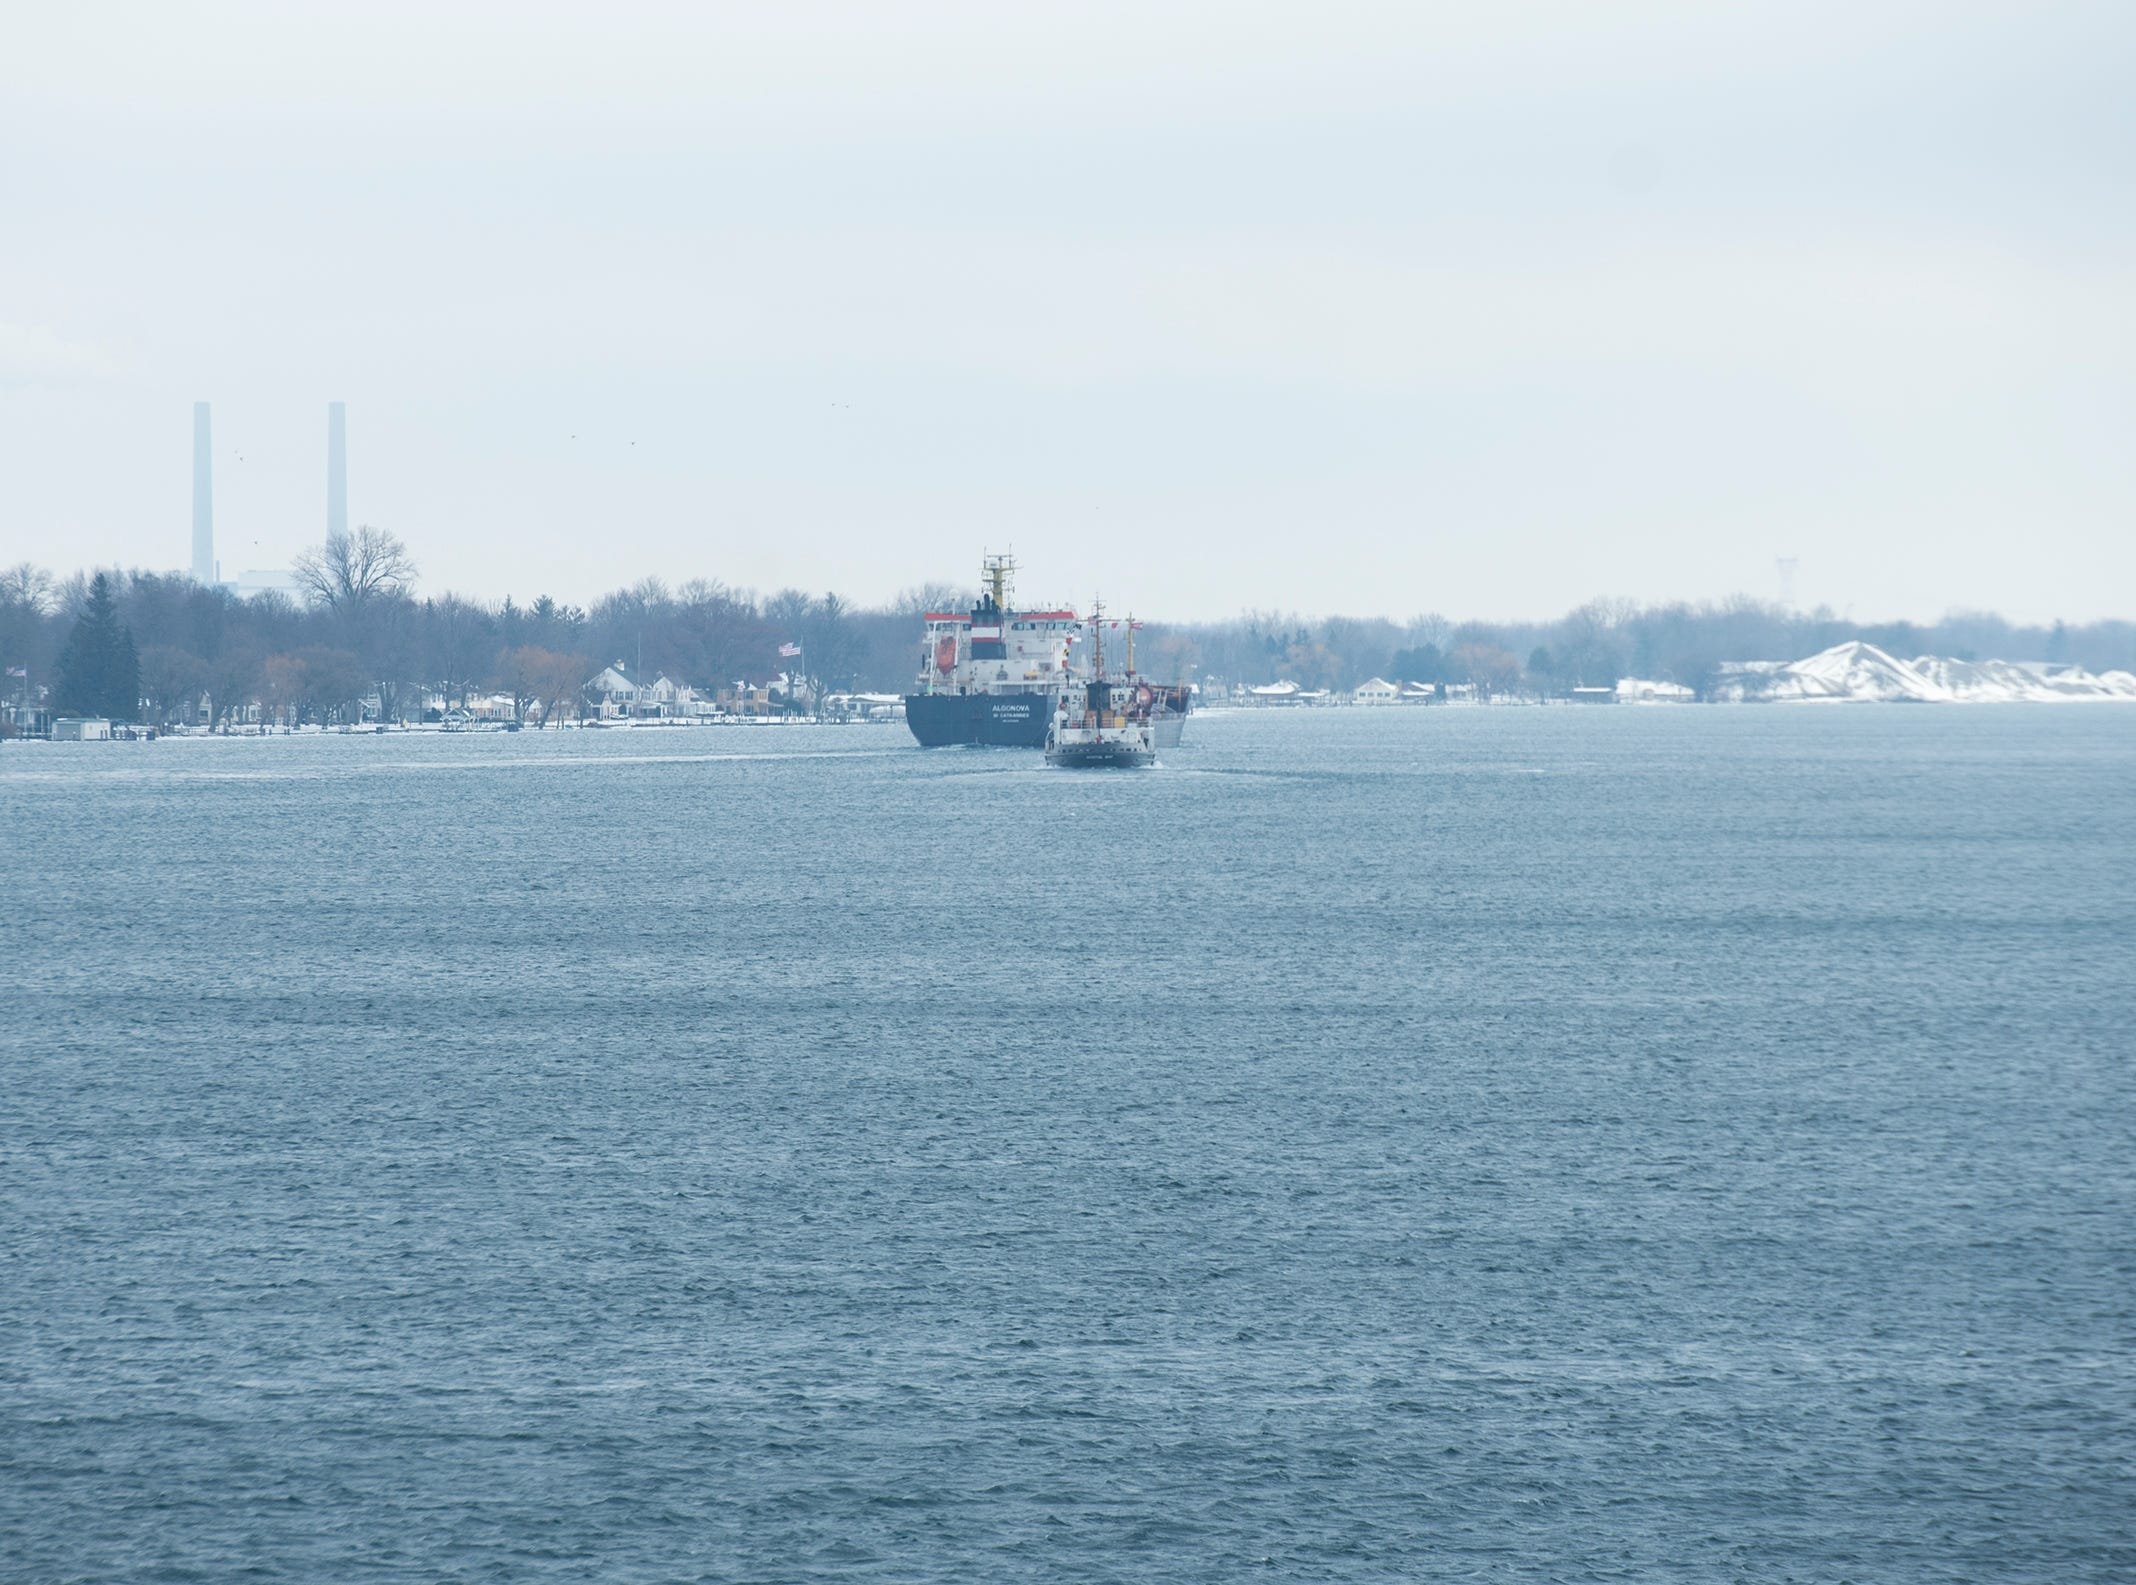 After clearing the ice, the Algonova passes the USCGC Bristol Bay and continues its journey north to Sarnia. With the Algonova having cleared the ice without incident, the Hollyhock stayed behind and dropped its anchor for maintenance.